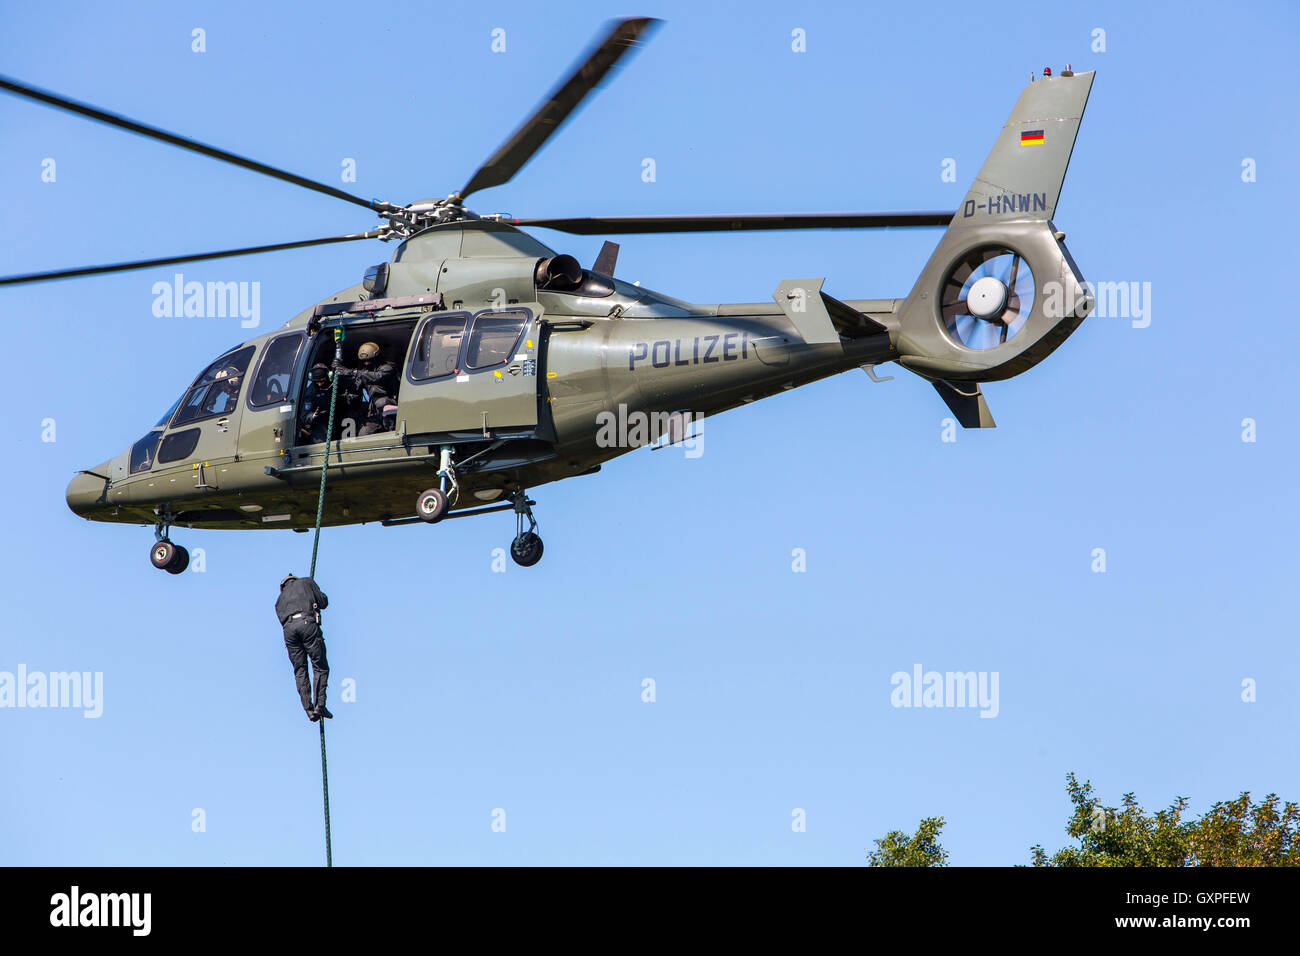 Exercise of a SWAT team, German police, anti Terror police unit, fast roping from a helicopter, - Stock Image